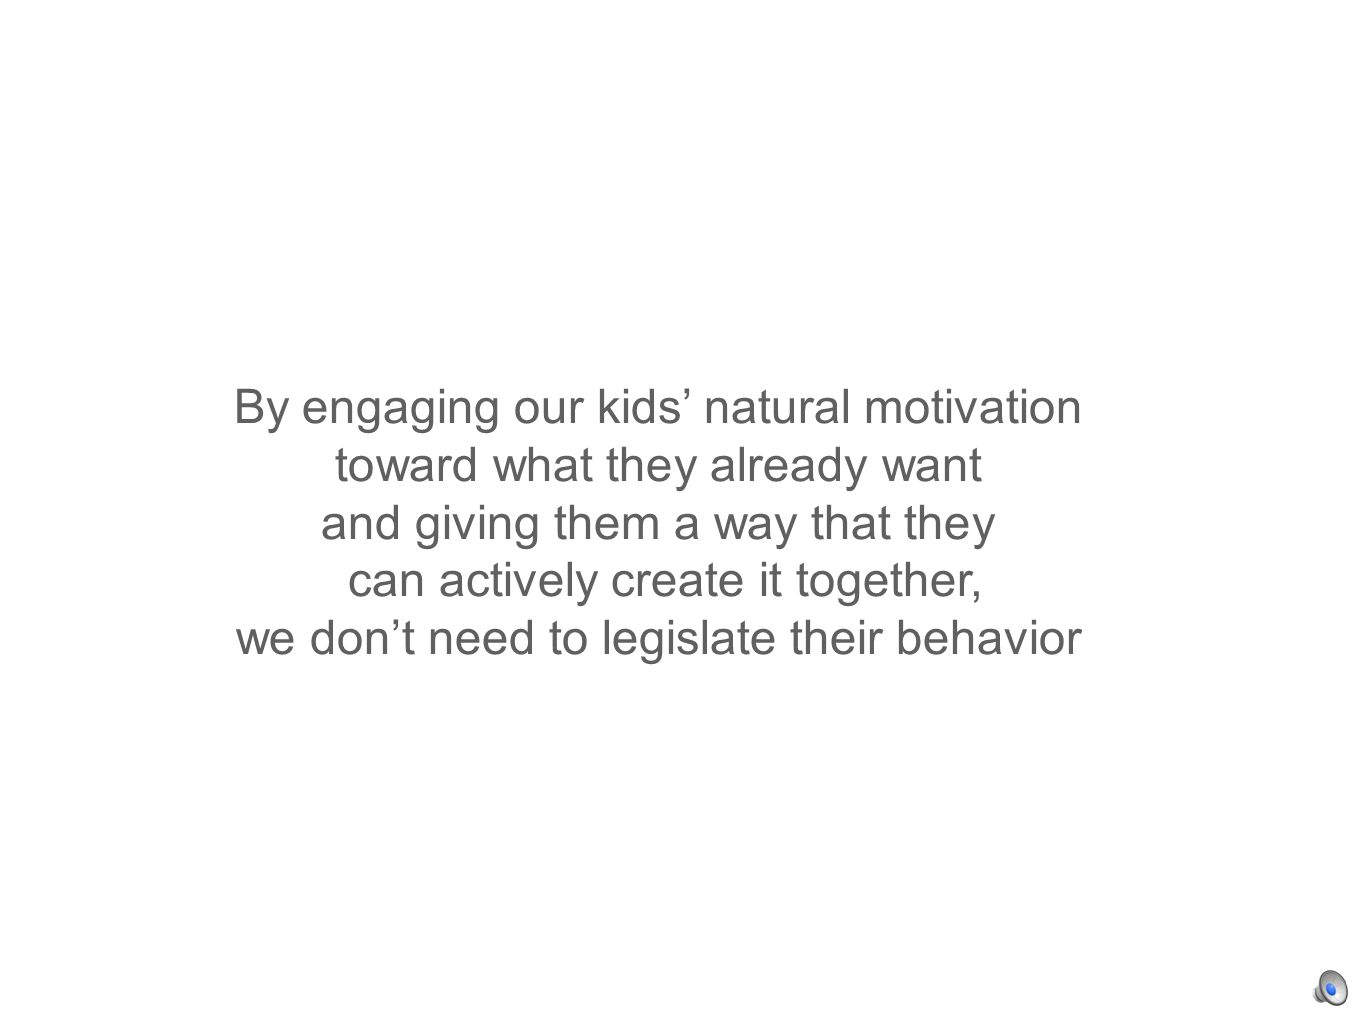 By engaging our kids natural motivation toward what they already want and giving them a way that they can actively create it together, we dont need to legislate their behavior